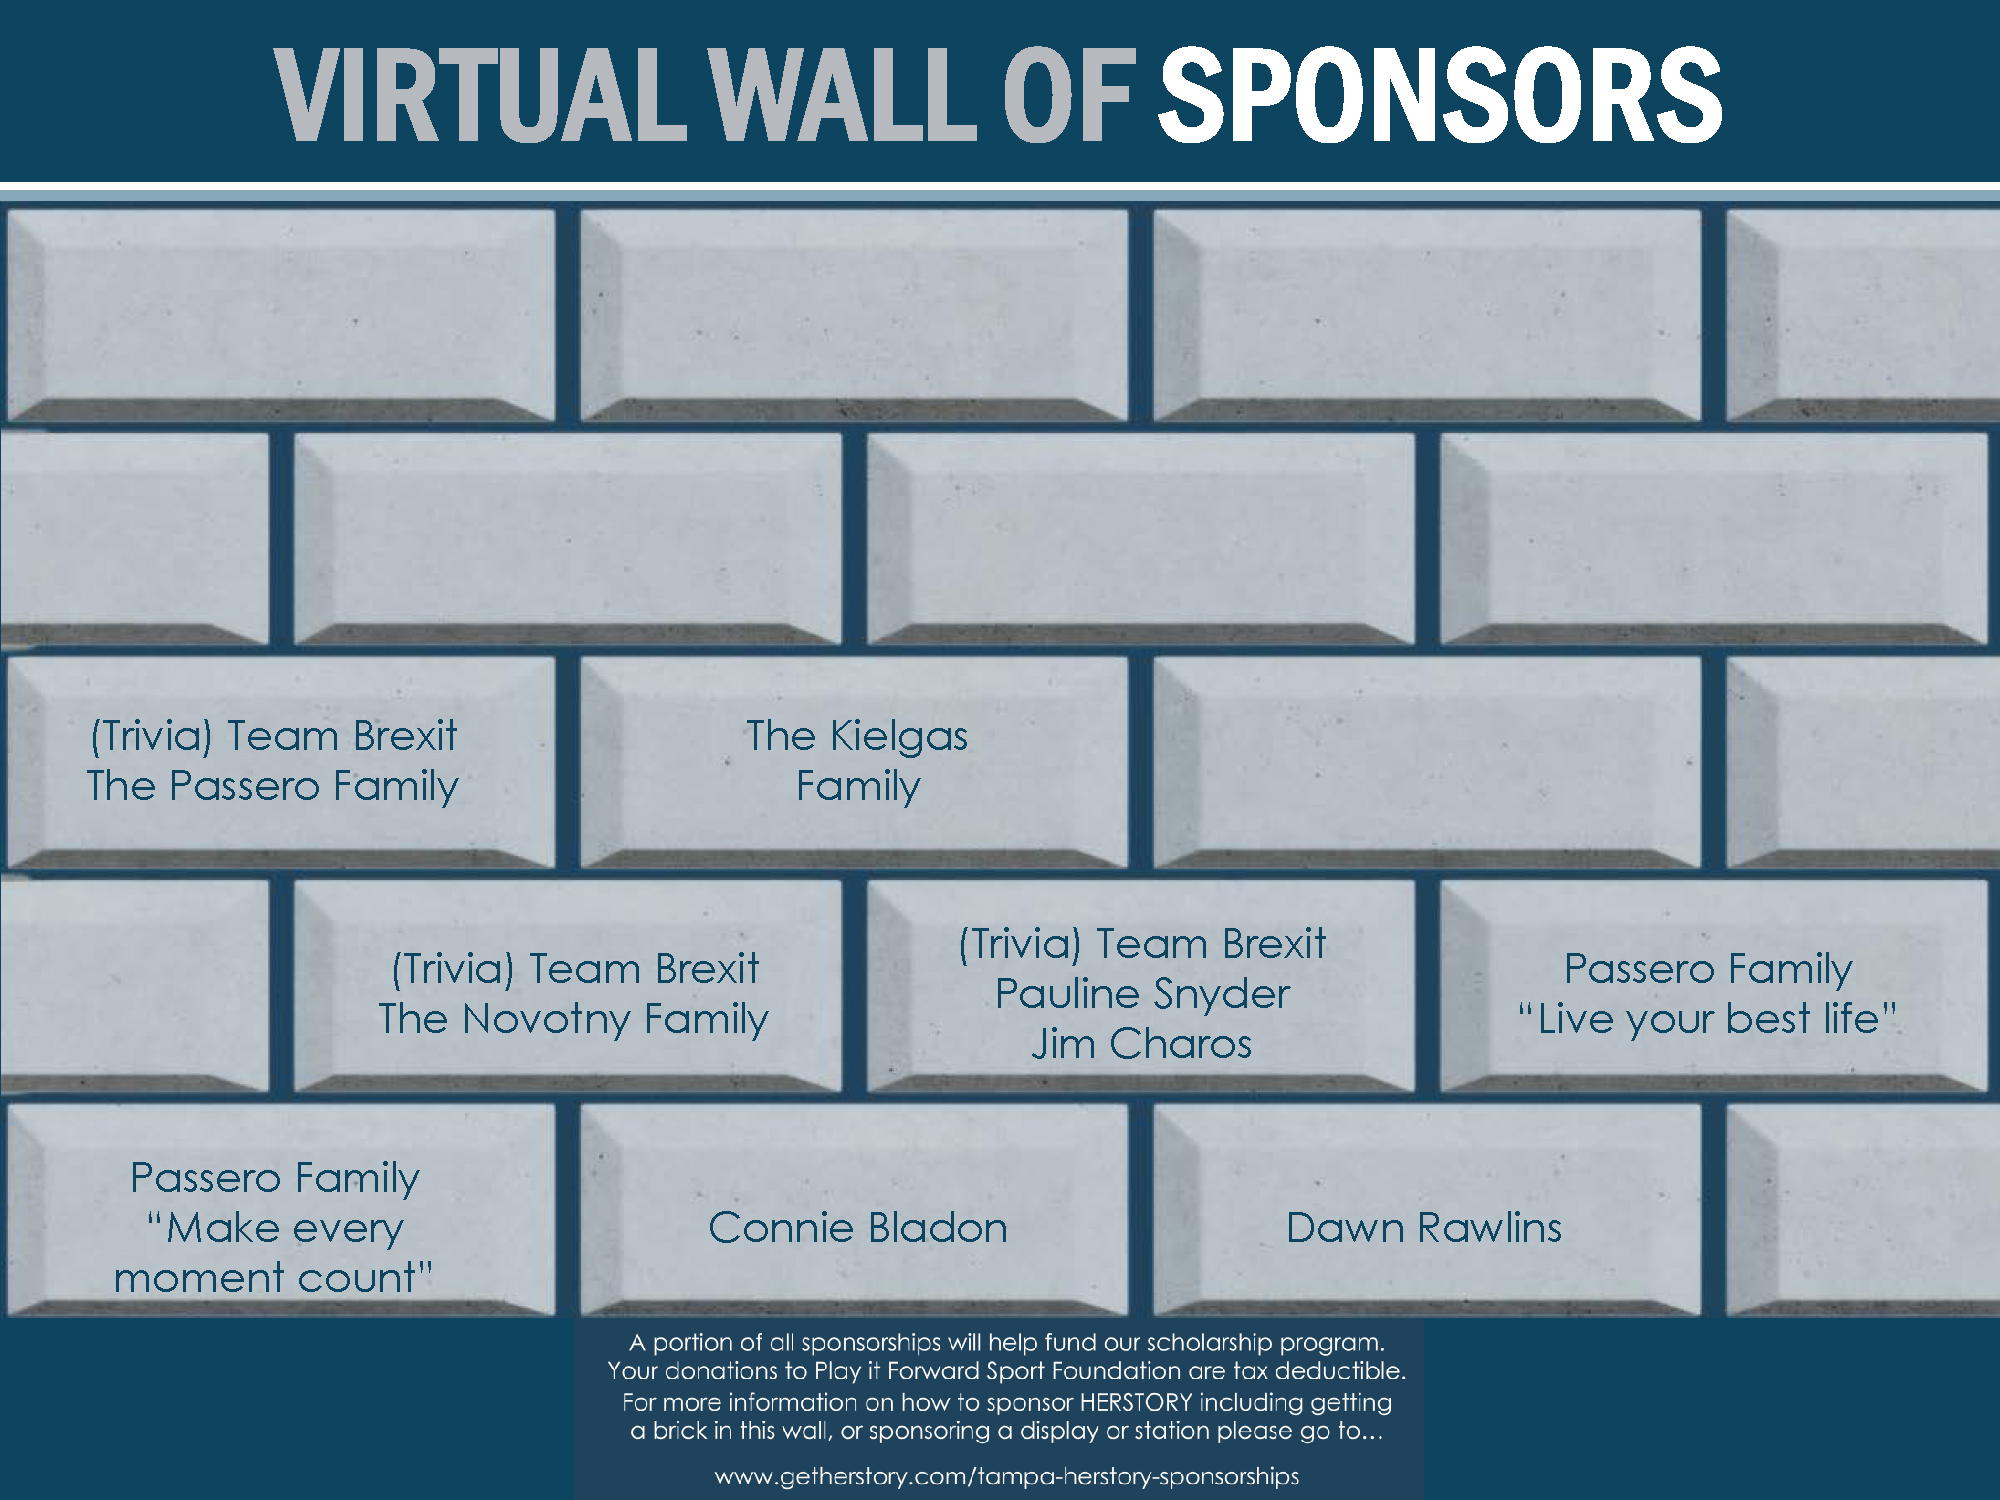 The names of incredible people who have supported the HERSTORY museum are memorialized with the above virtual bricks!